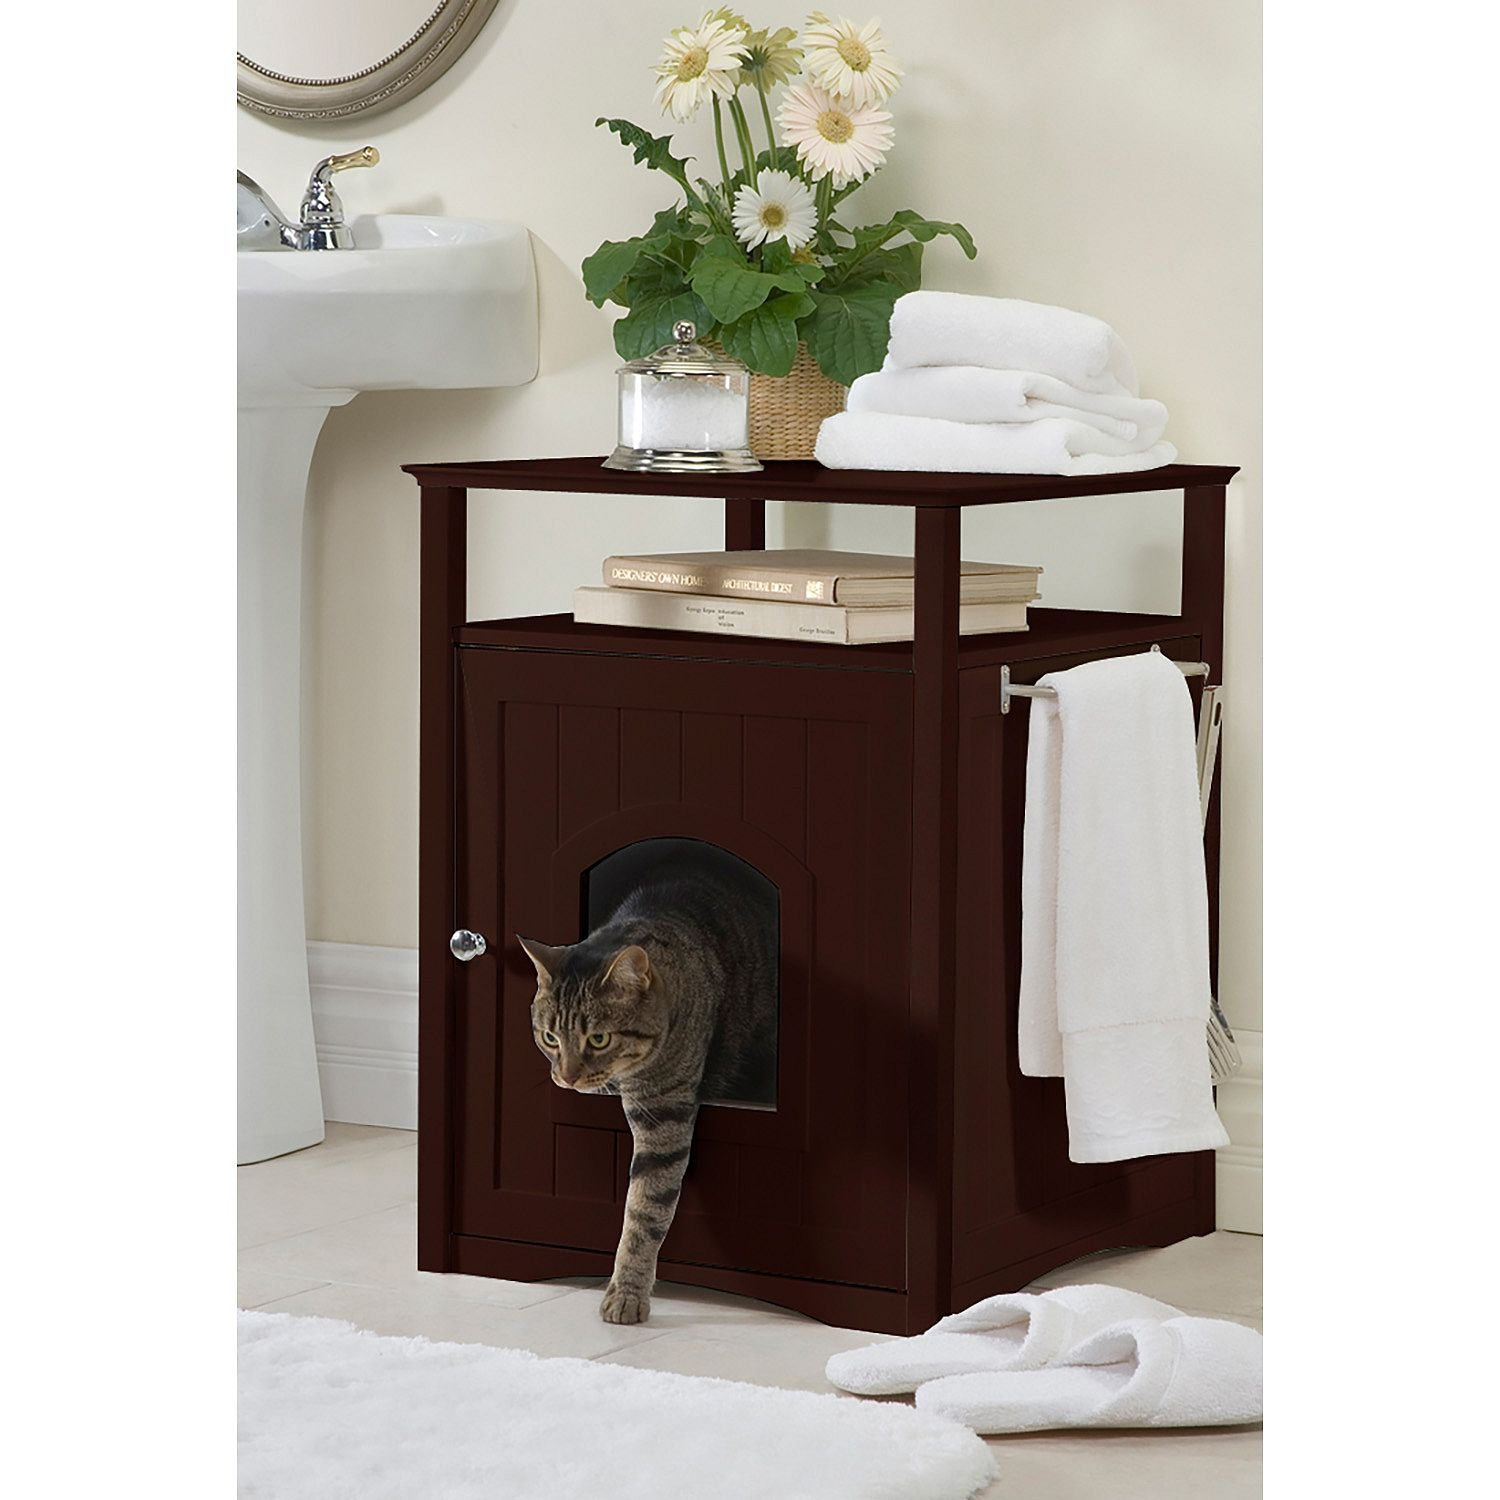 Home Furniture Cat Bed Walnut Finish Comfort Room with Night Stand by Kitty